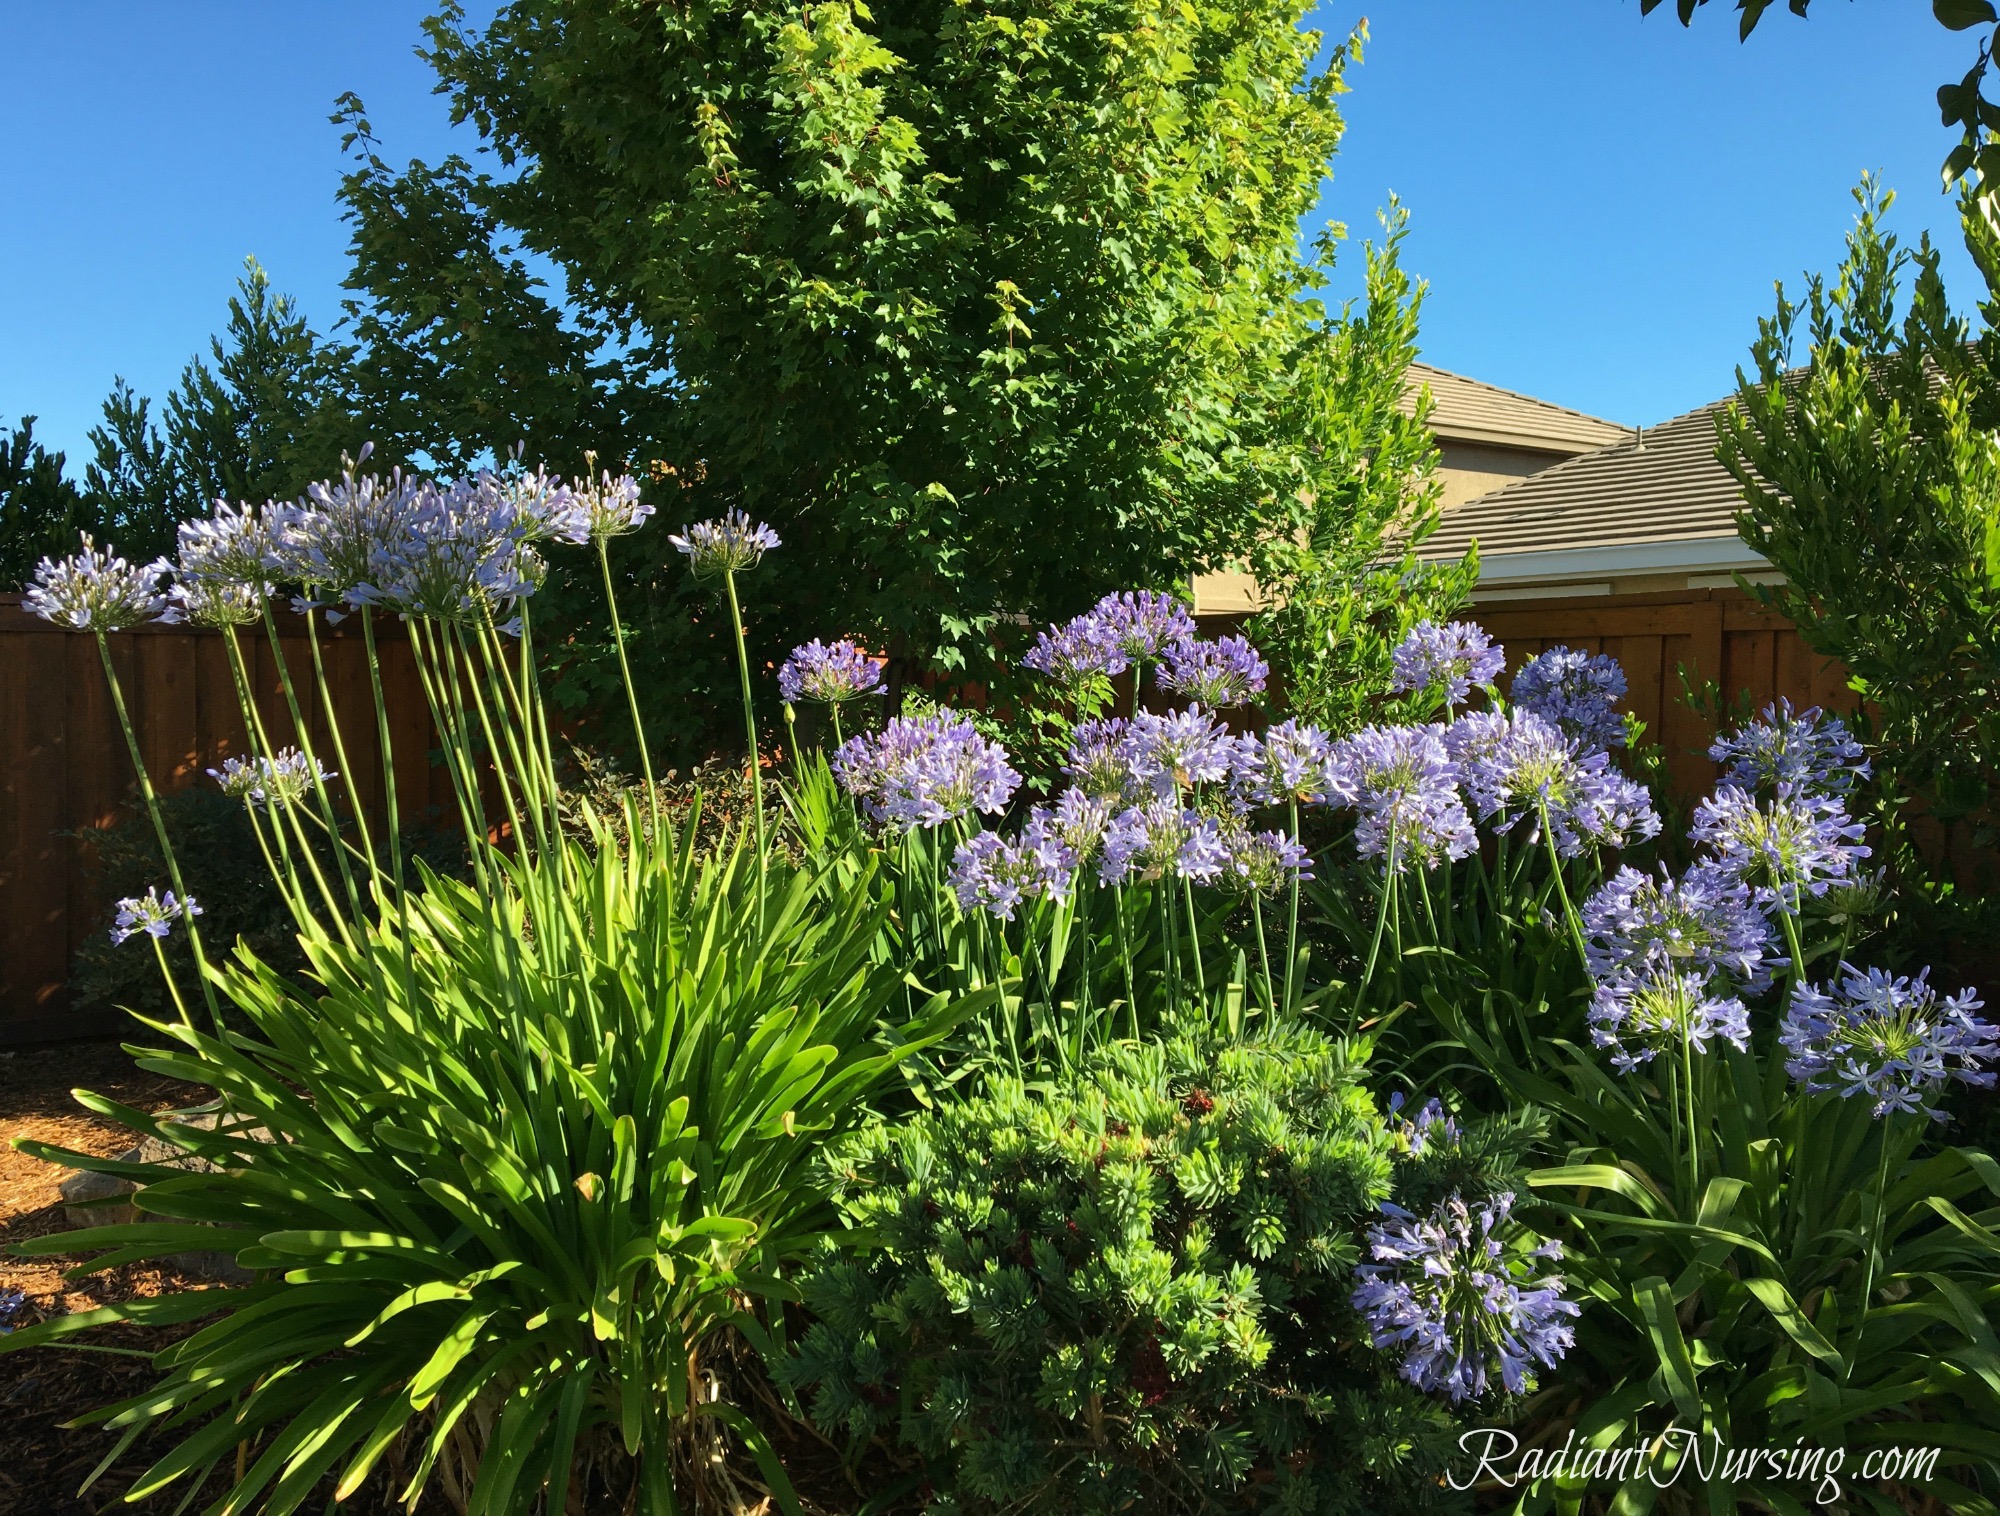 Agapanthus blooming in the garden.